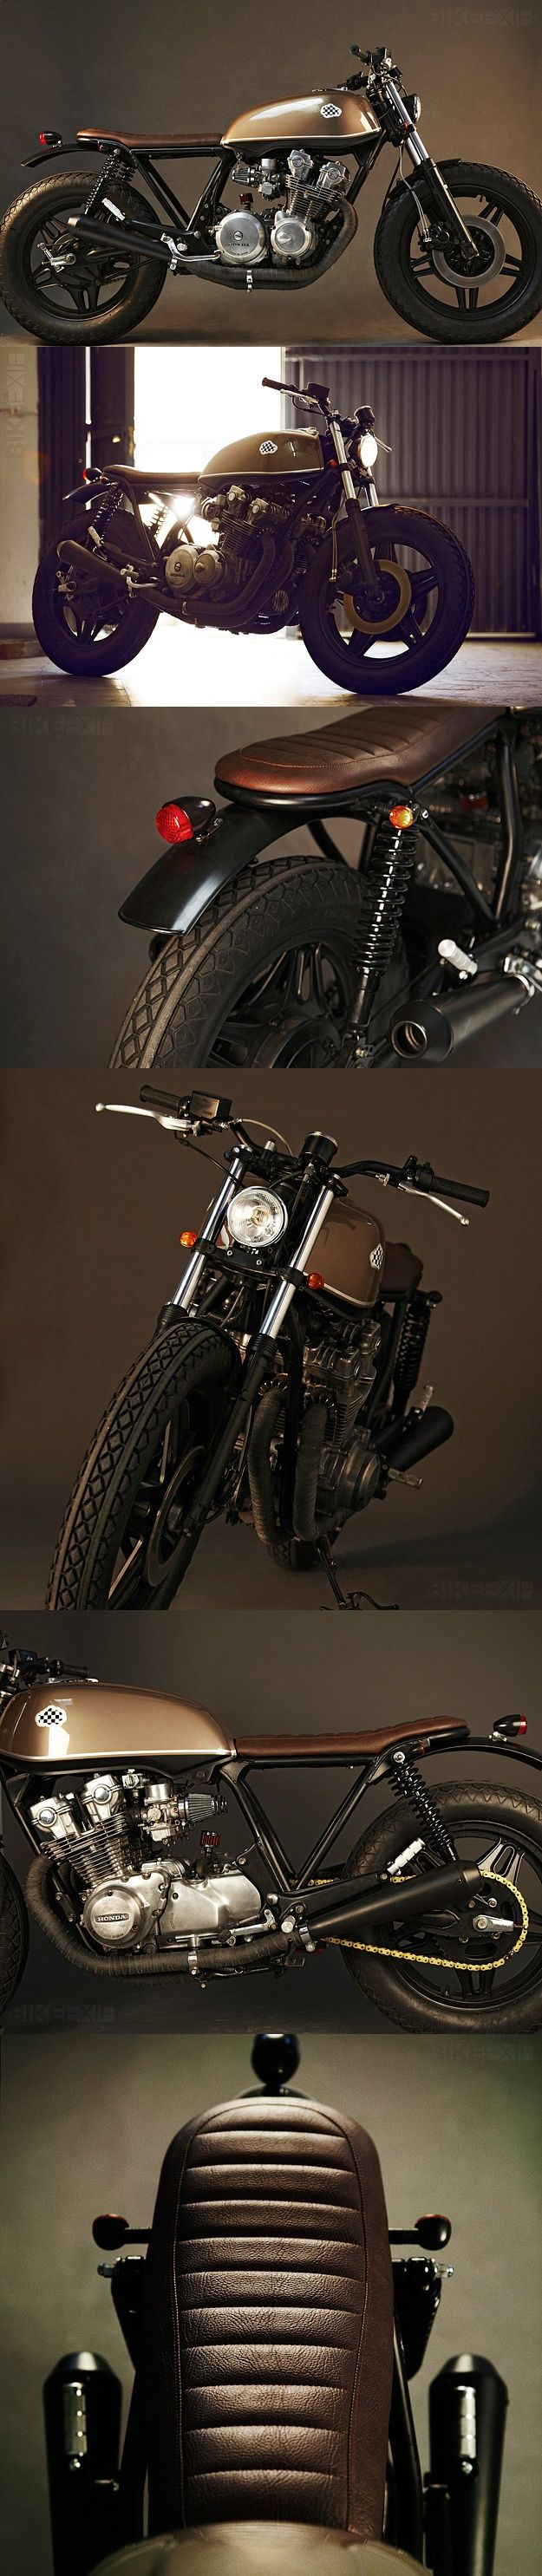 HONDA CB 750 1980 from Spain's Café Racer Dreams | I had one of these last night.. then I woke up -_-